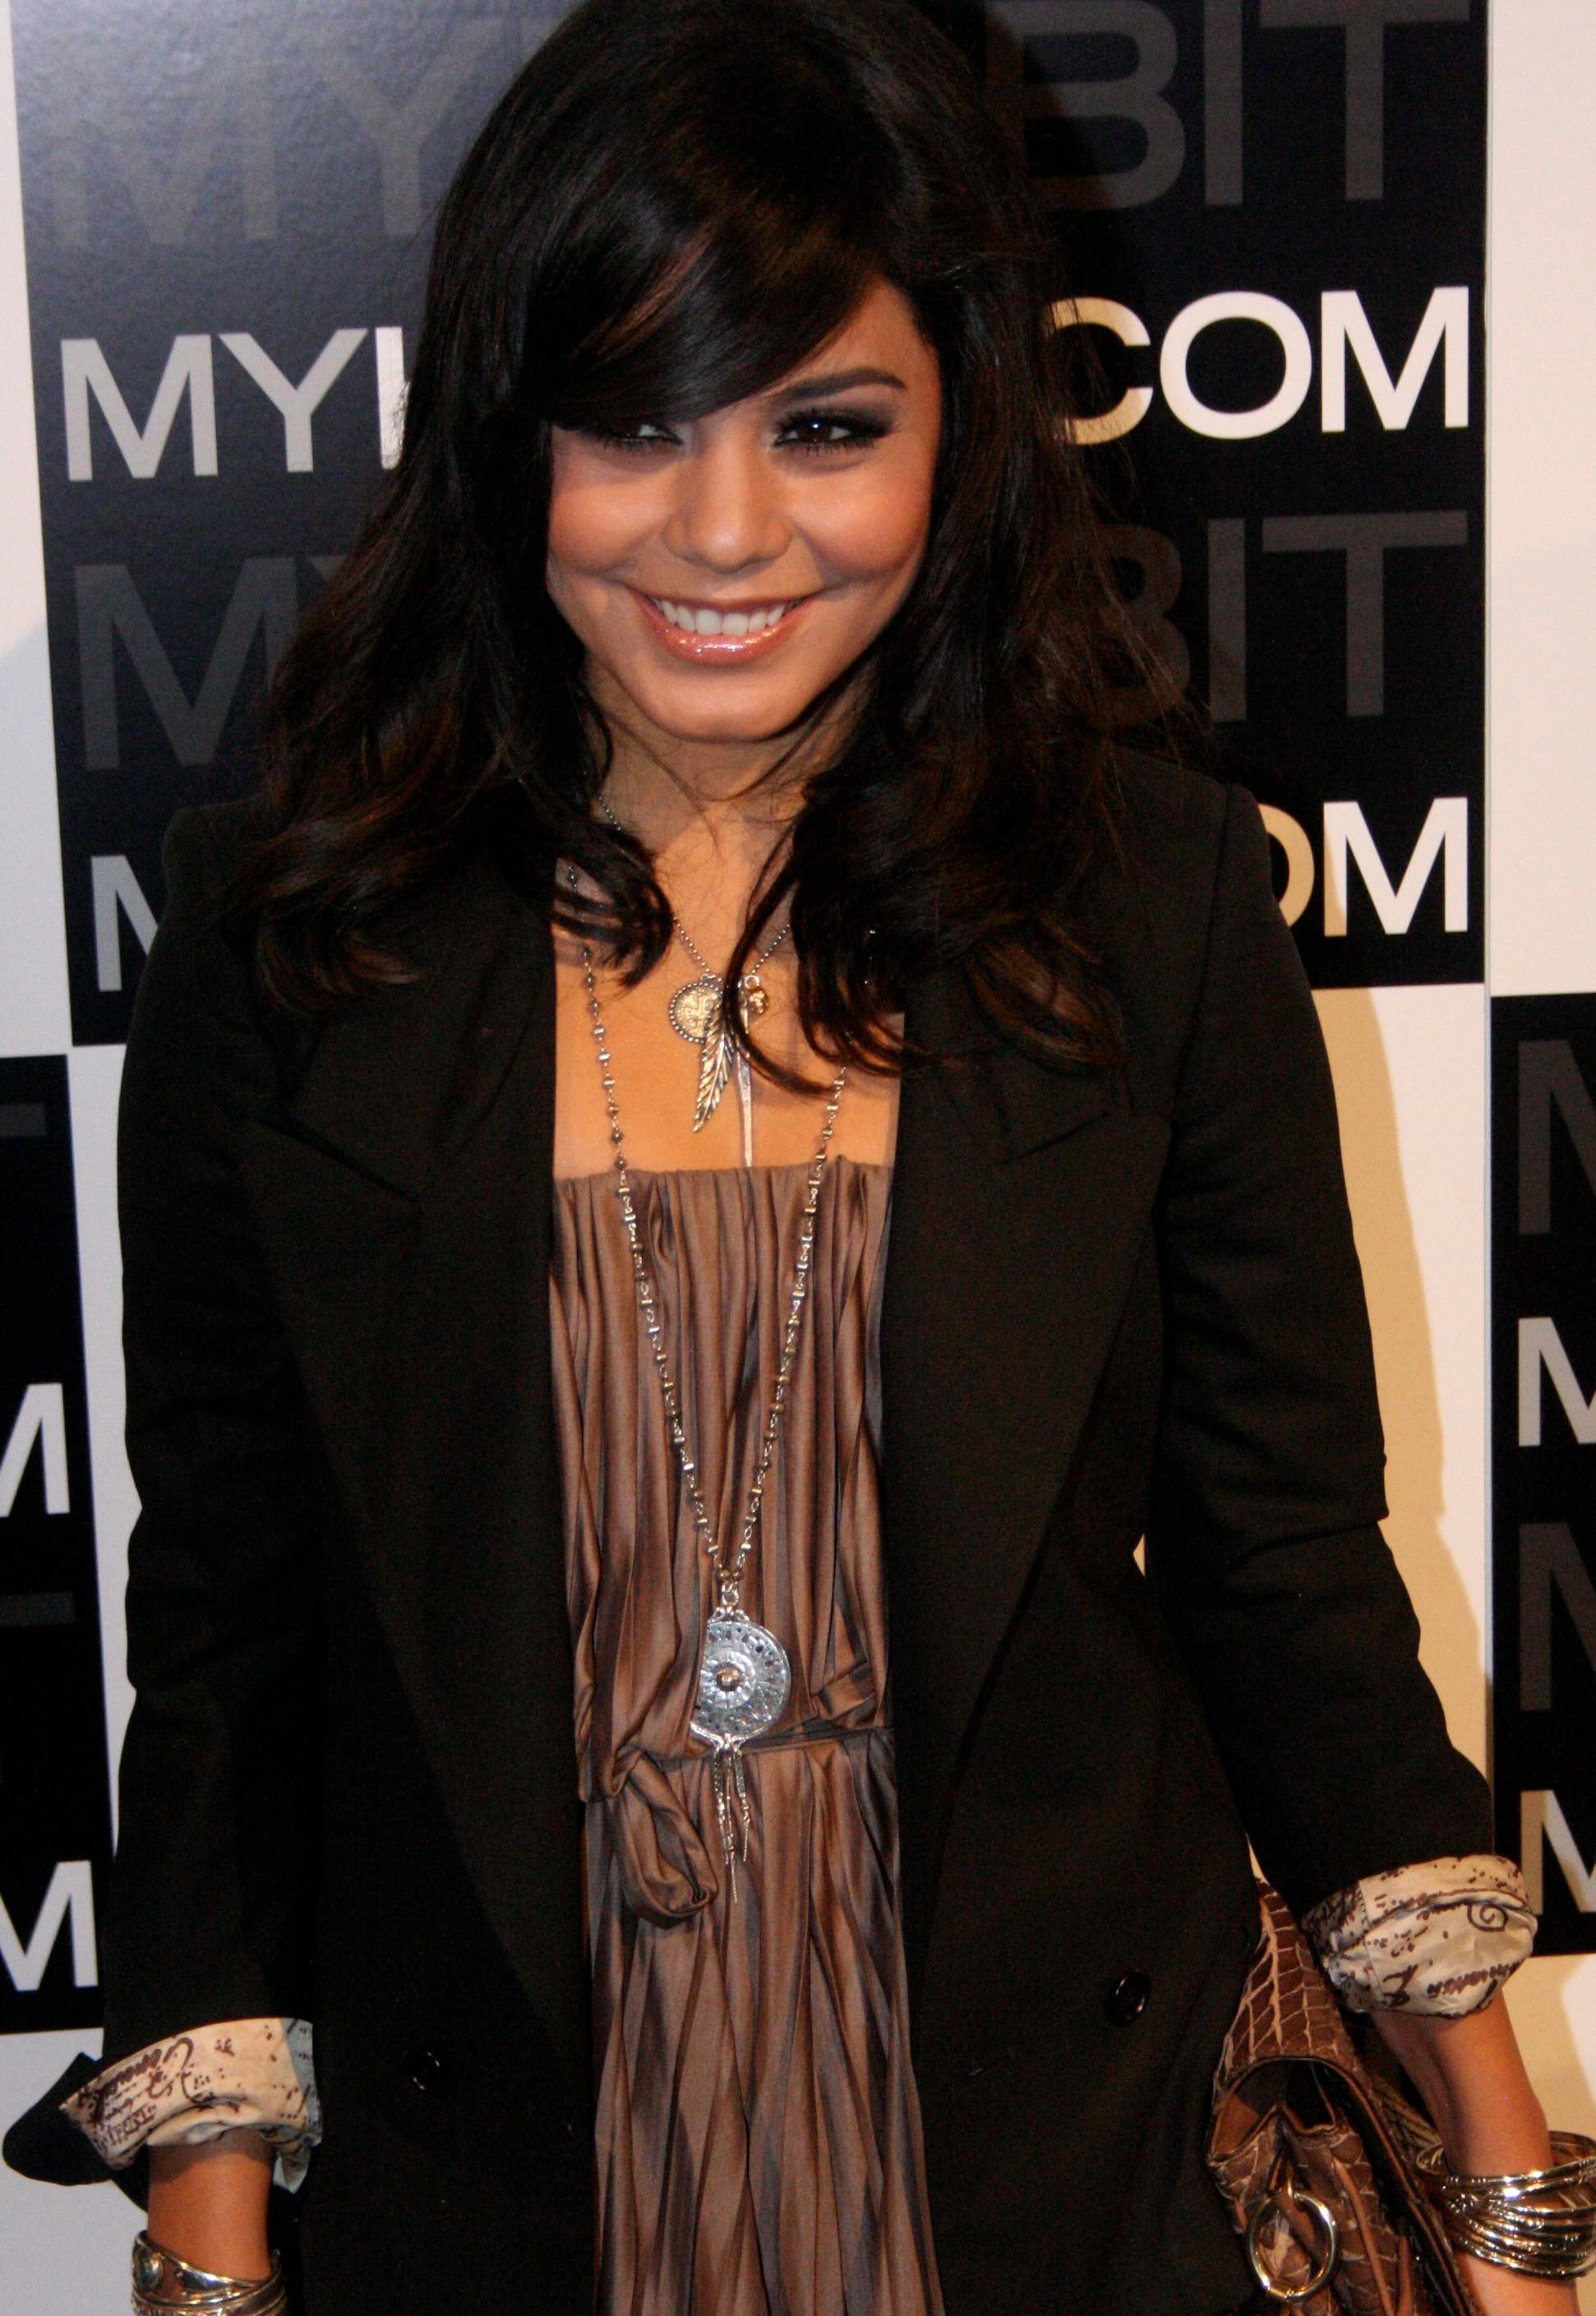 File:Vanessa Hudgens 2011.jpg - Wikipedia, the free encyclopedia